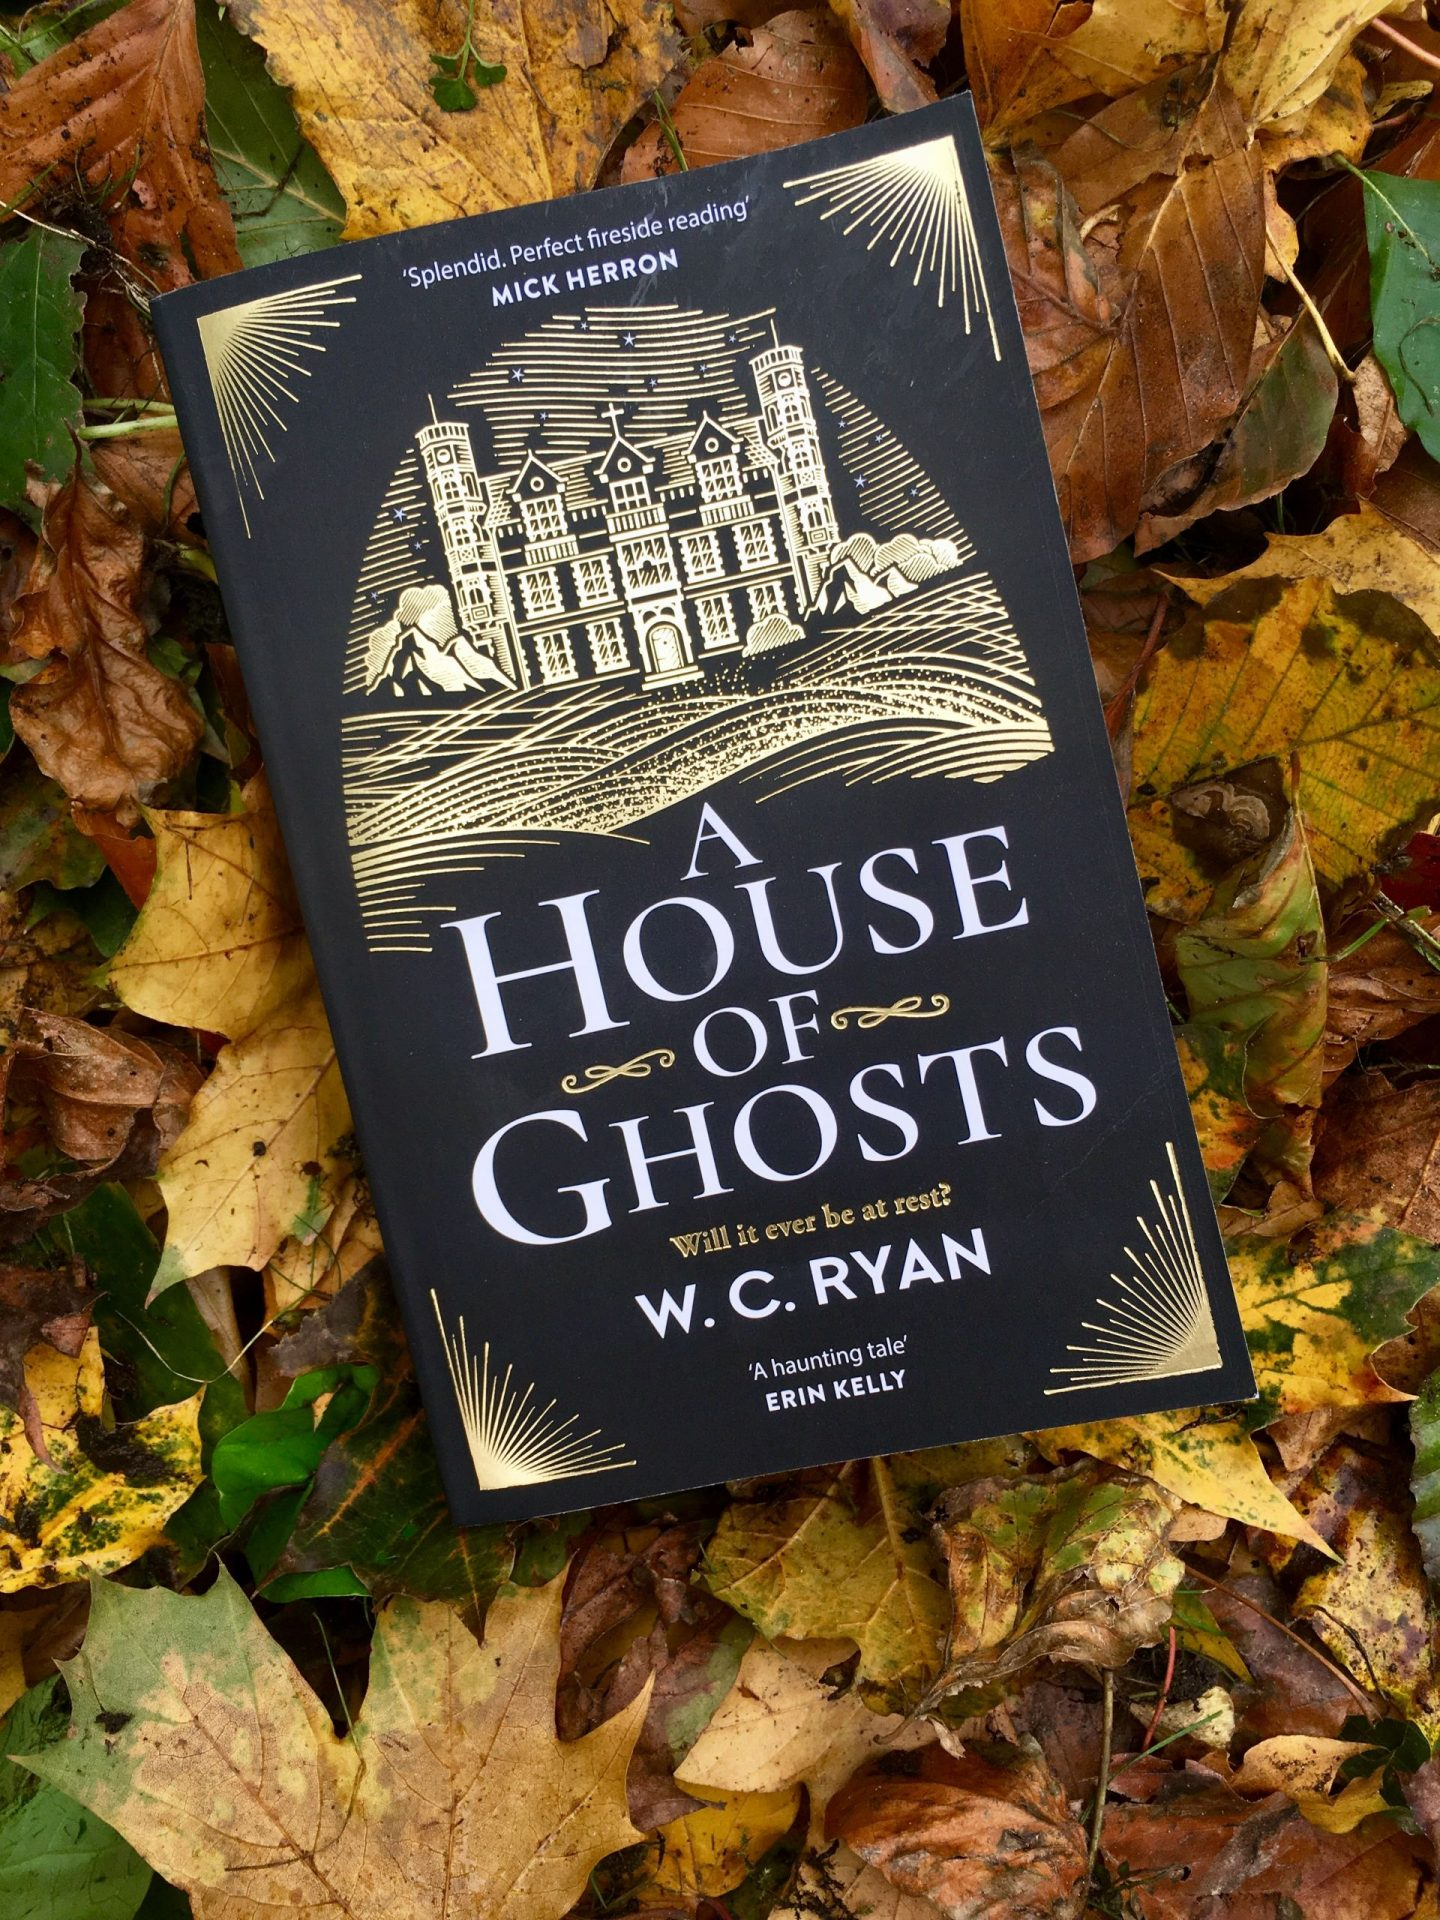 A House of Ghosts: a ghostly whodunnit treat